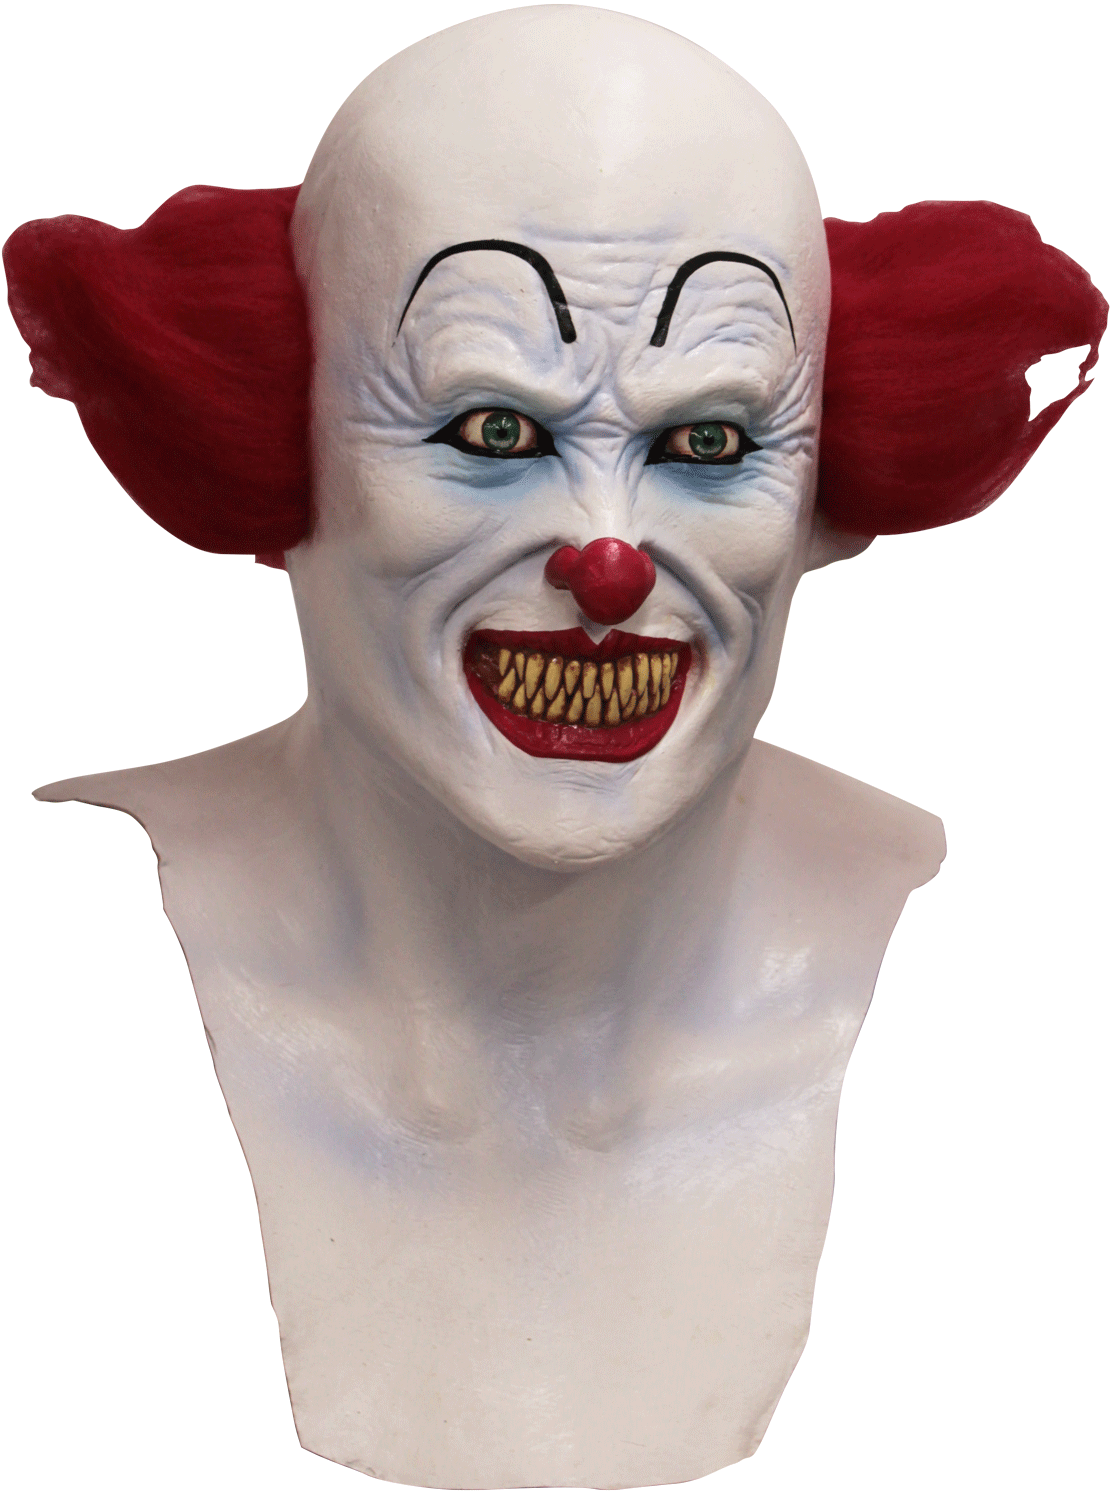 Clown mask png. Scary mystique costumes